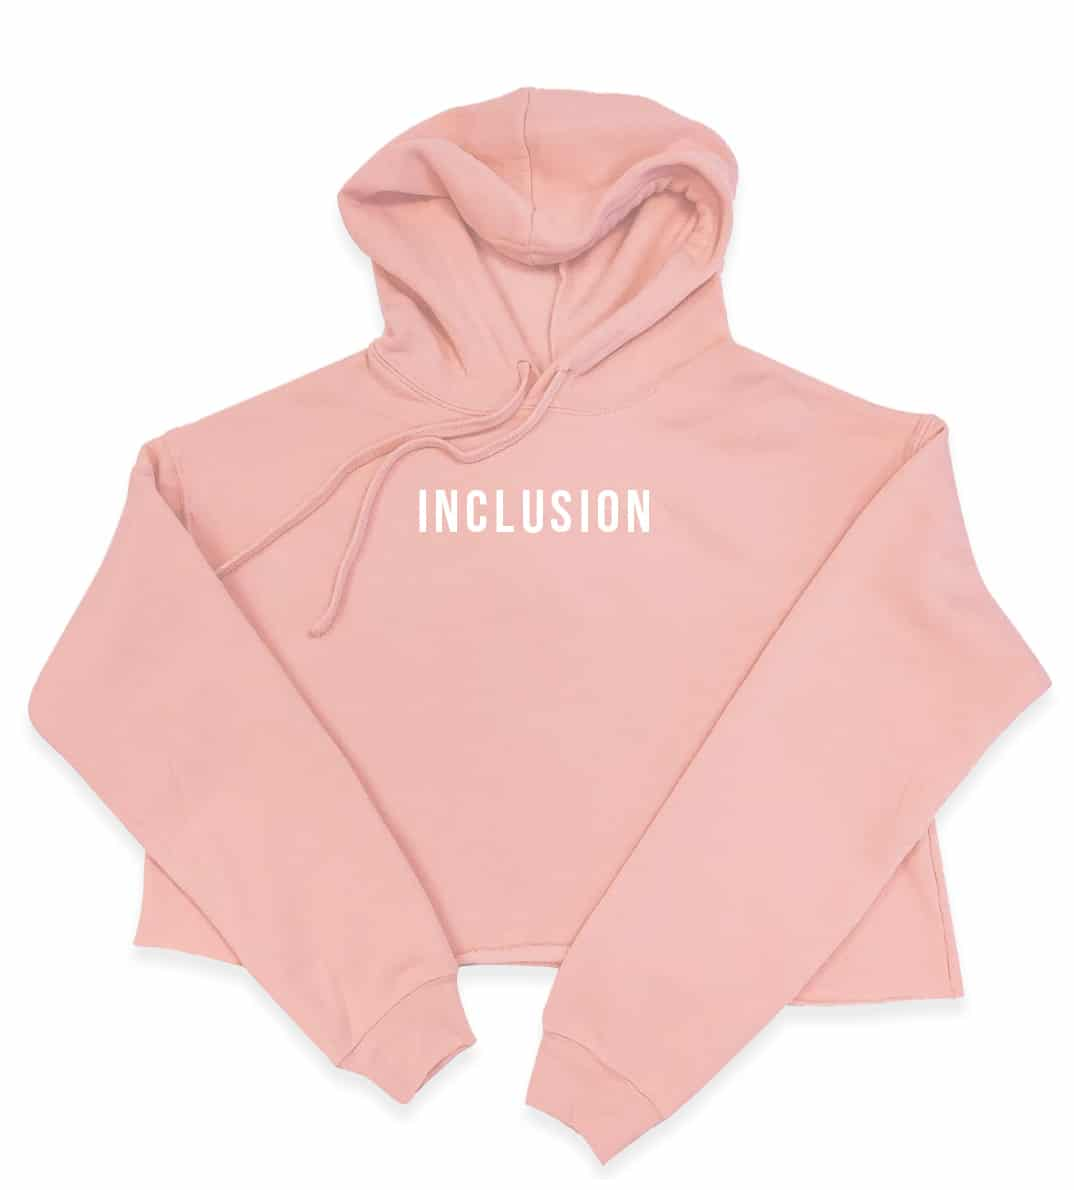 Shop Best Buddies: Inclusion Crop Top